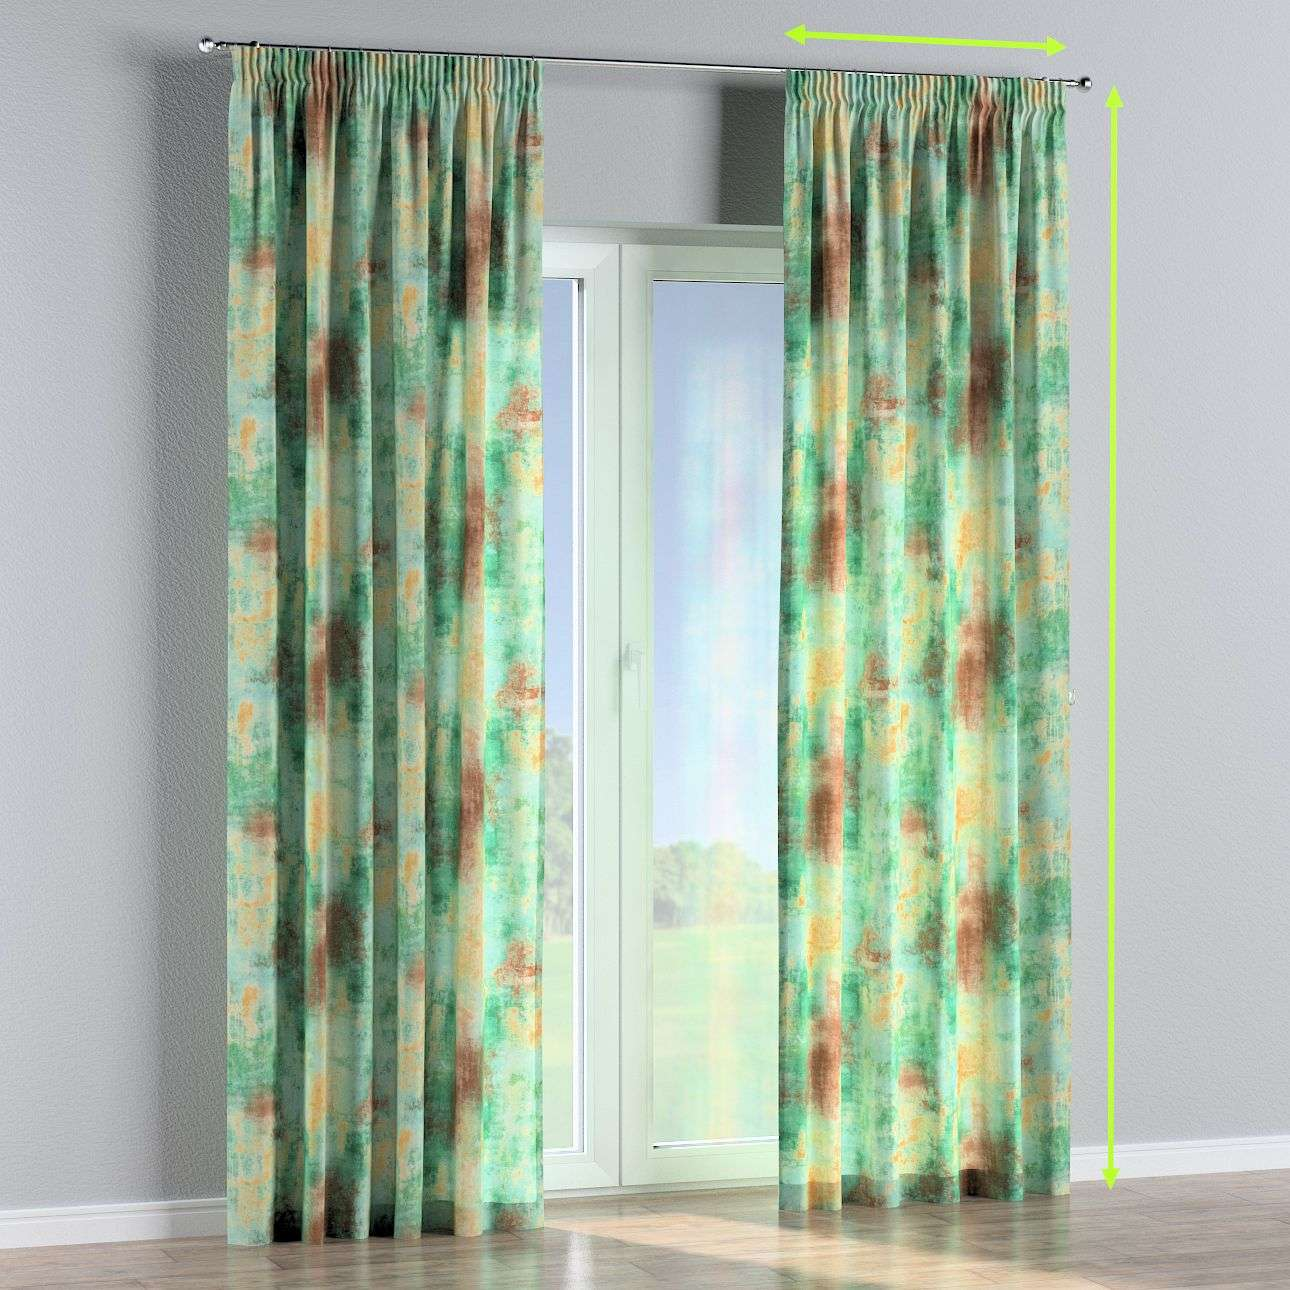 Pencil pleat lined curtains in collection Urban Jungle, fabric: 141-22